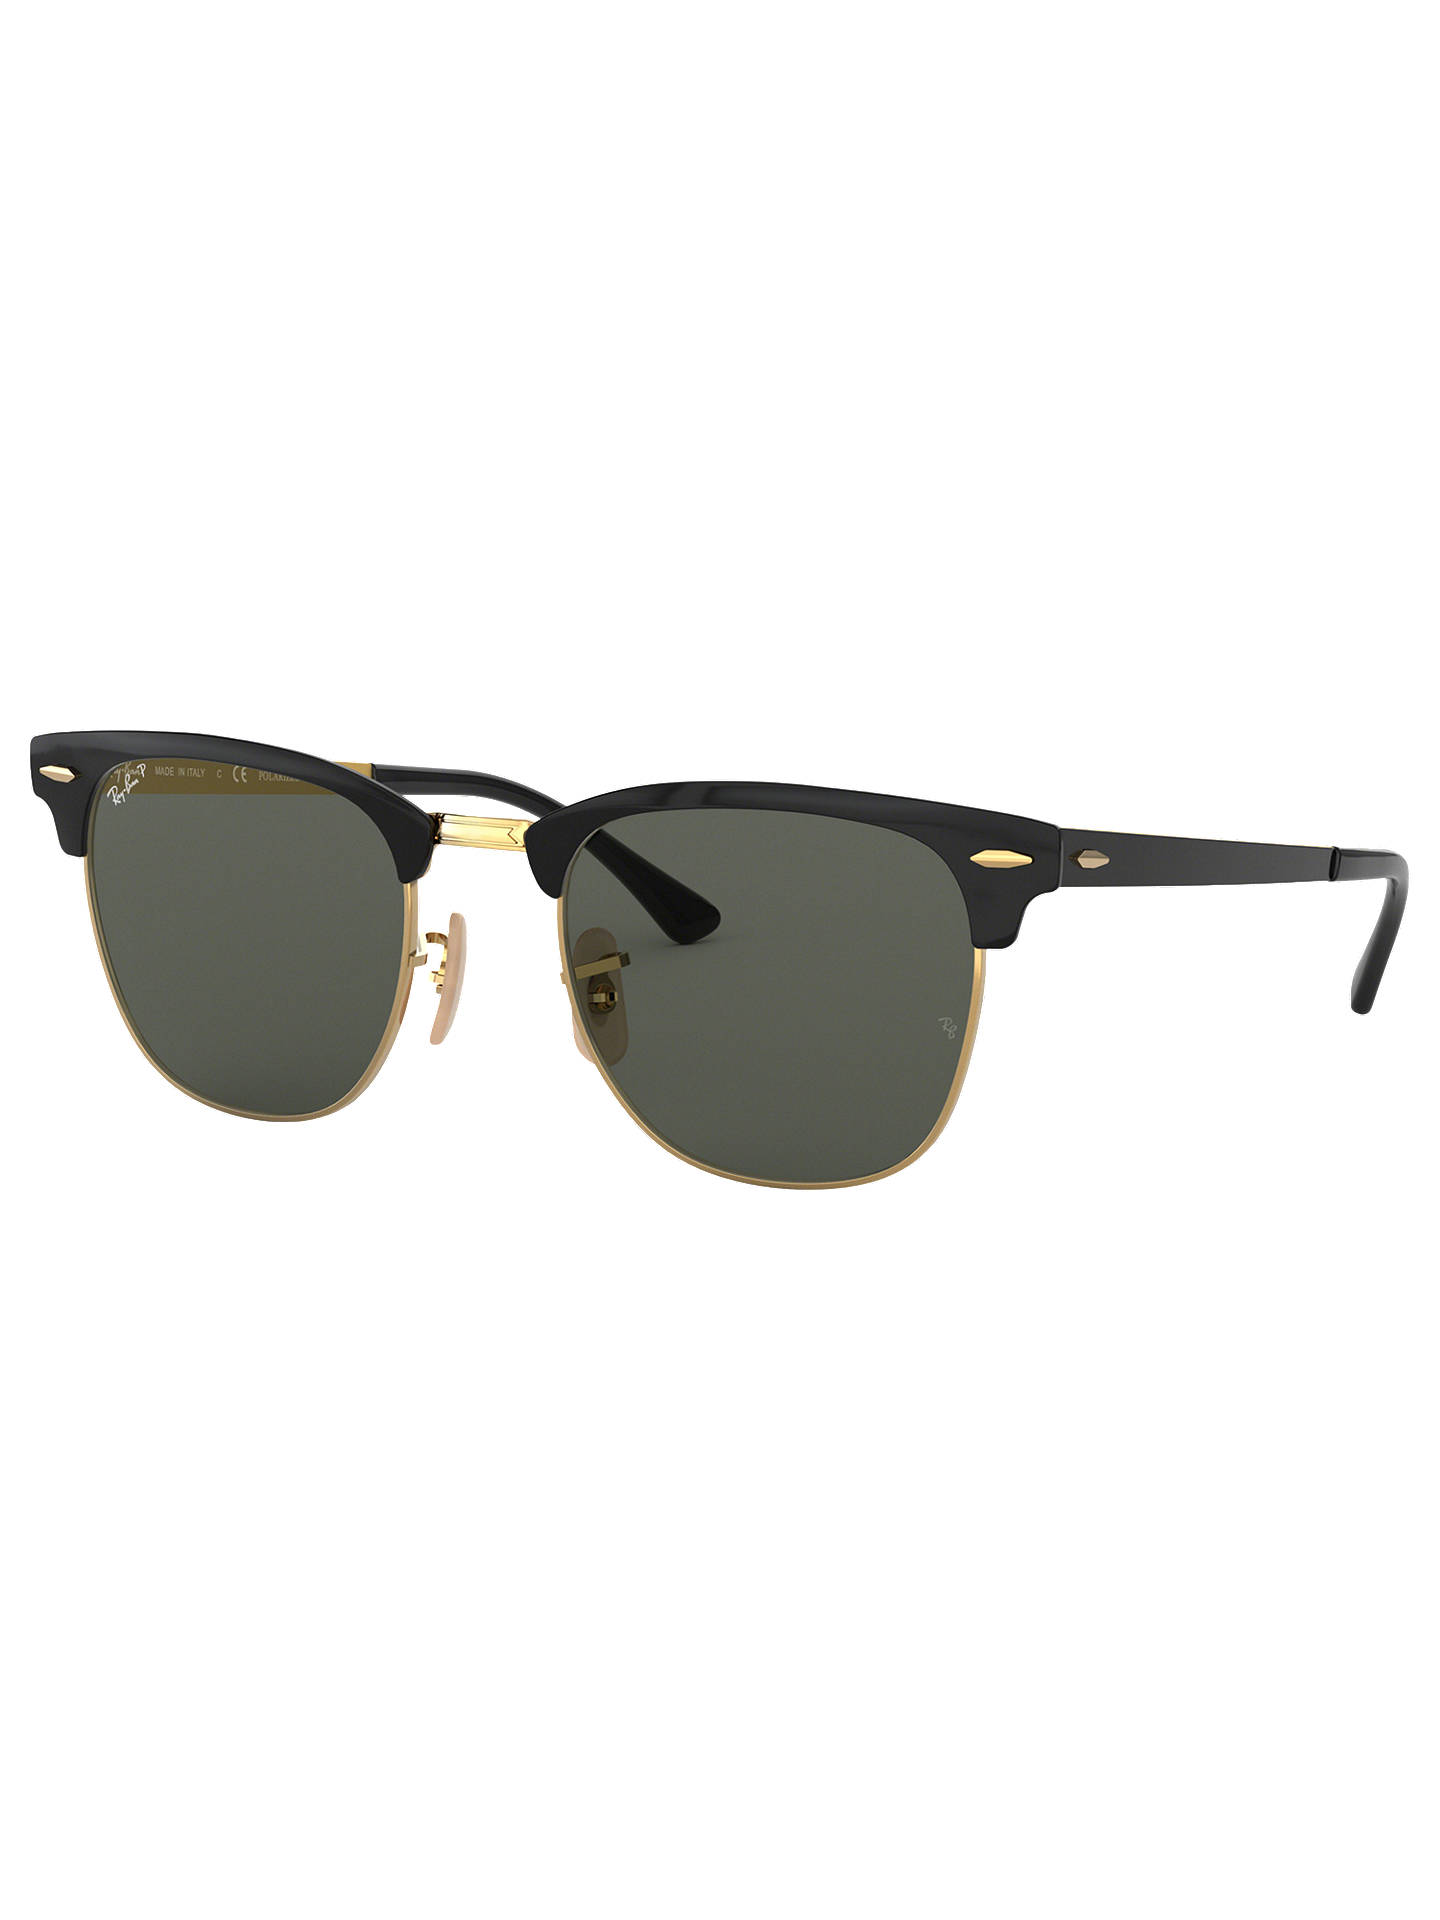 b4137635f2 BuyRay-Ban RB3716 Polarised Unisex Square Sunglasses